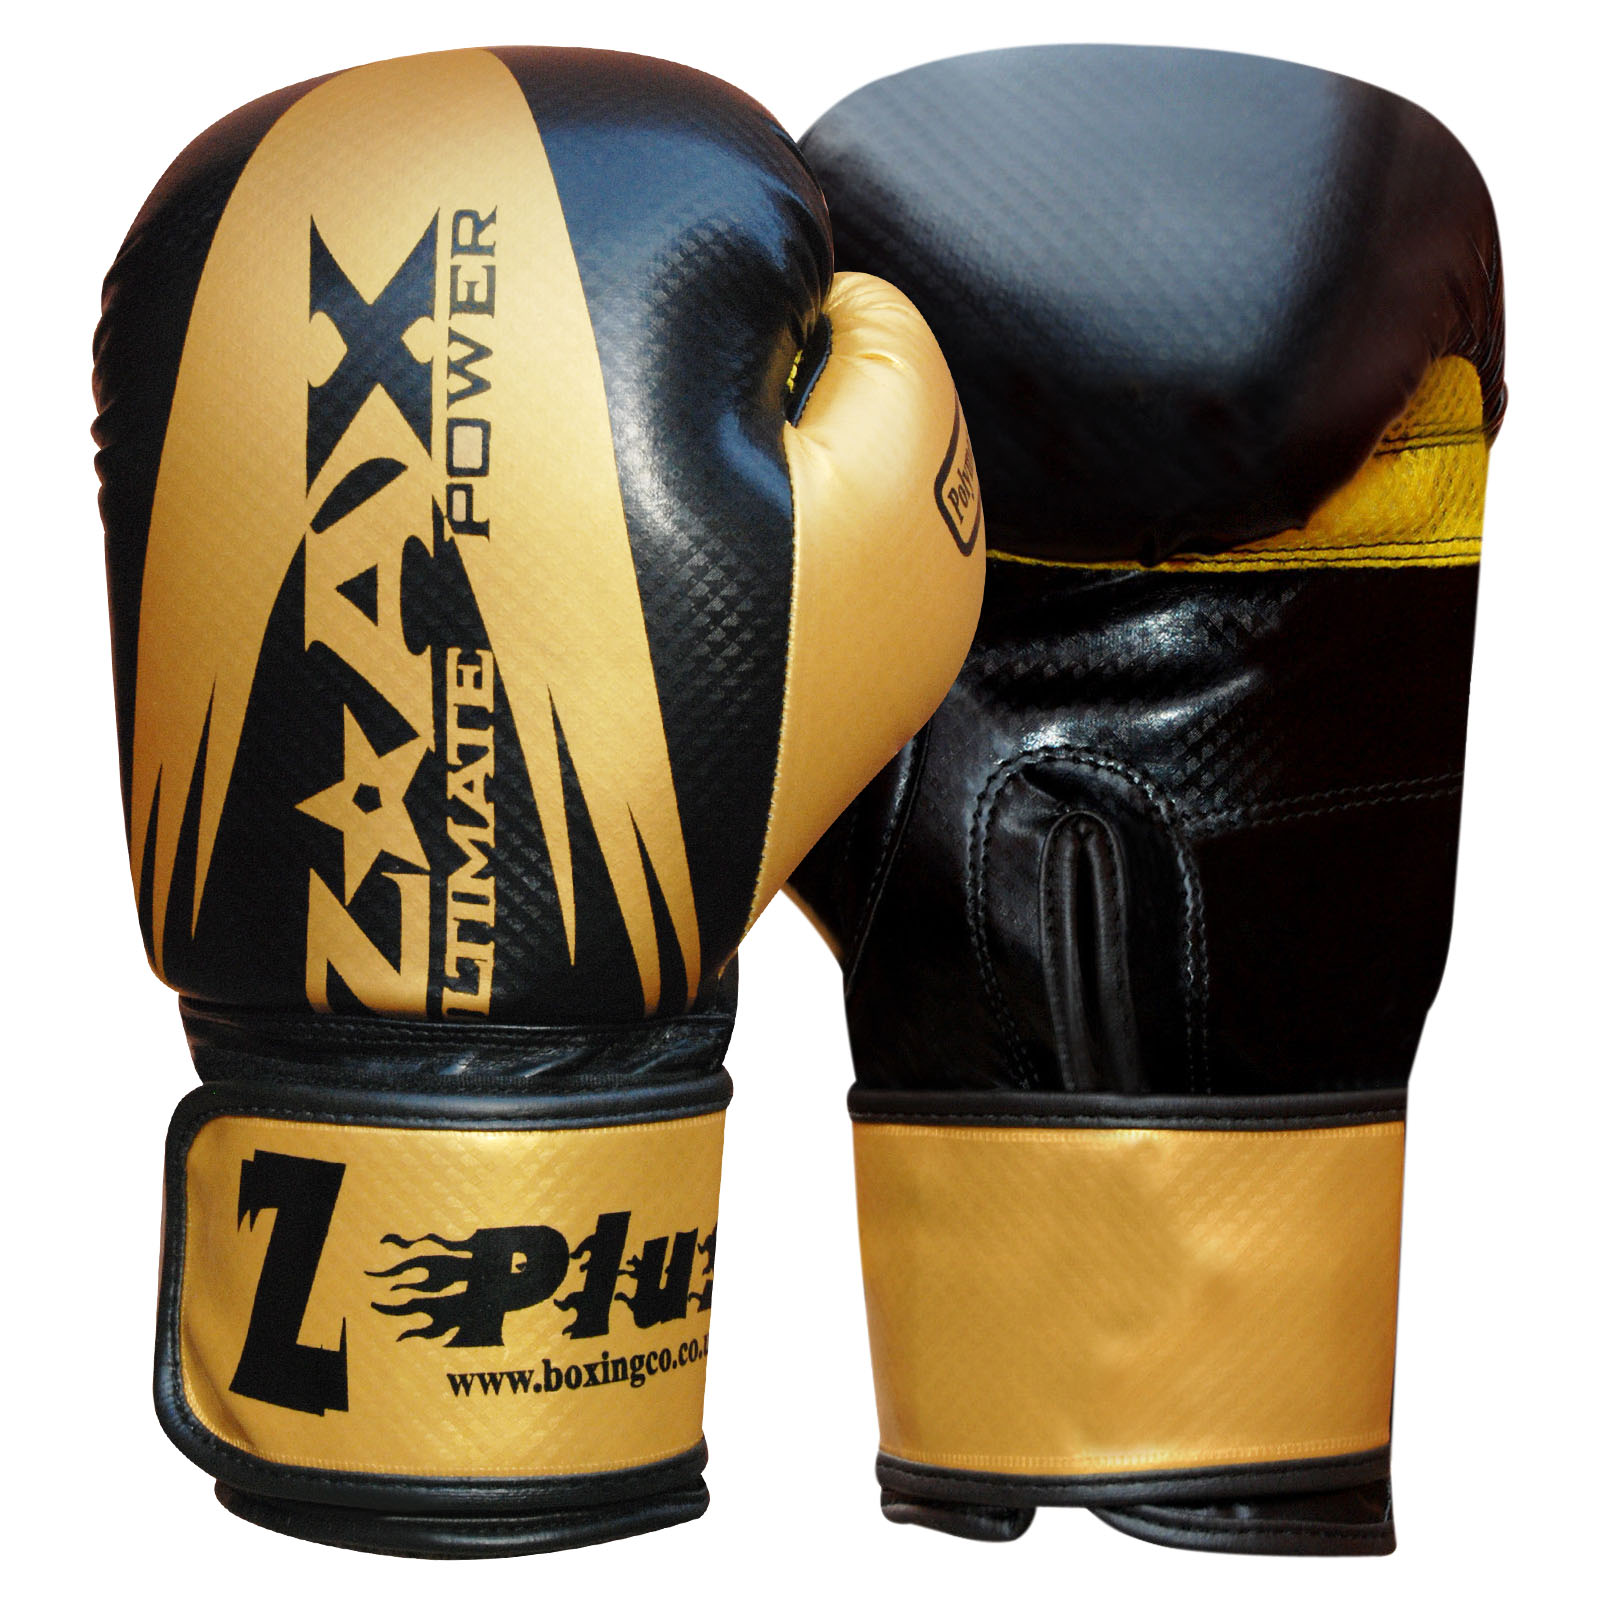 Boxing & Martial Art Products